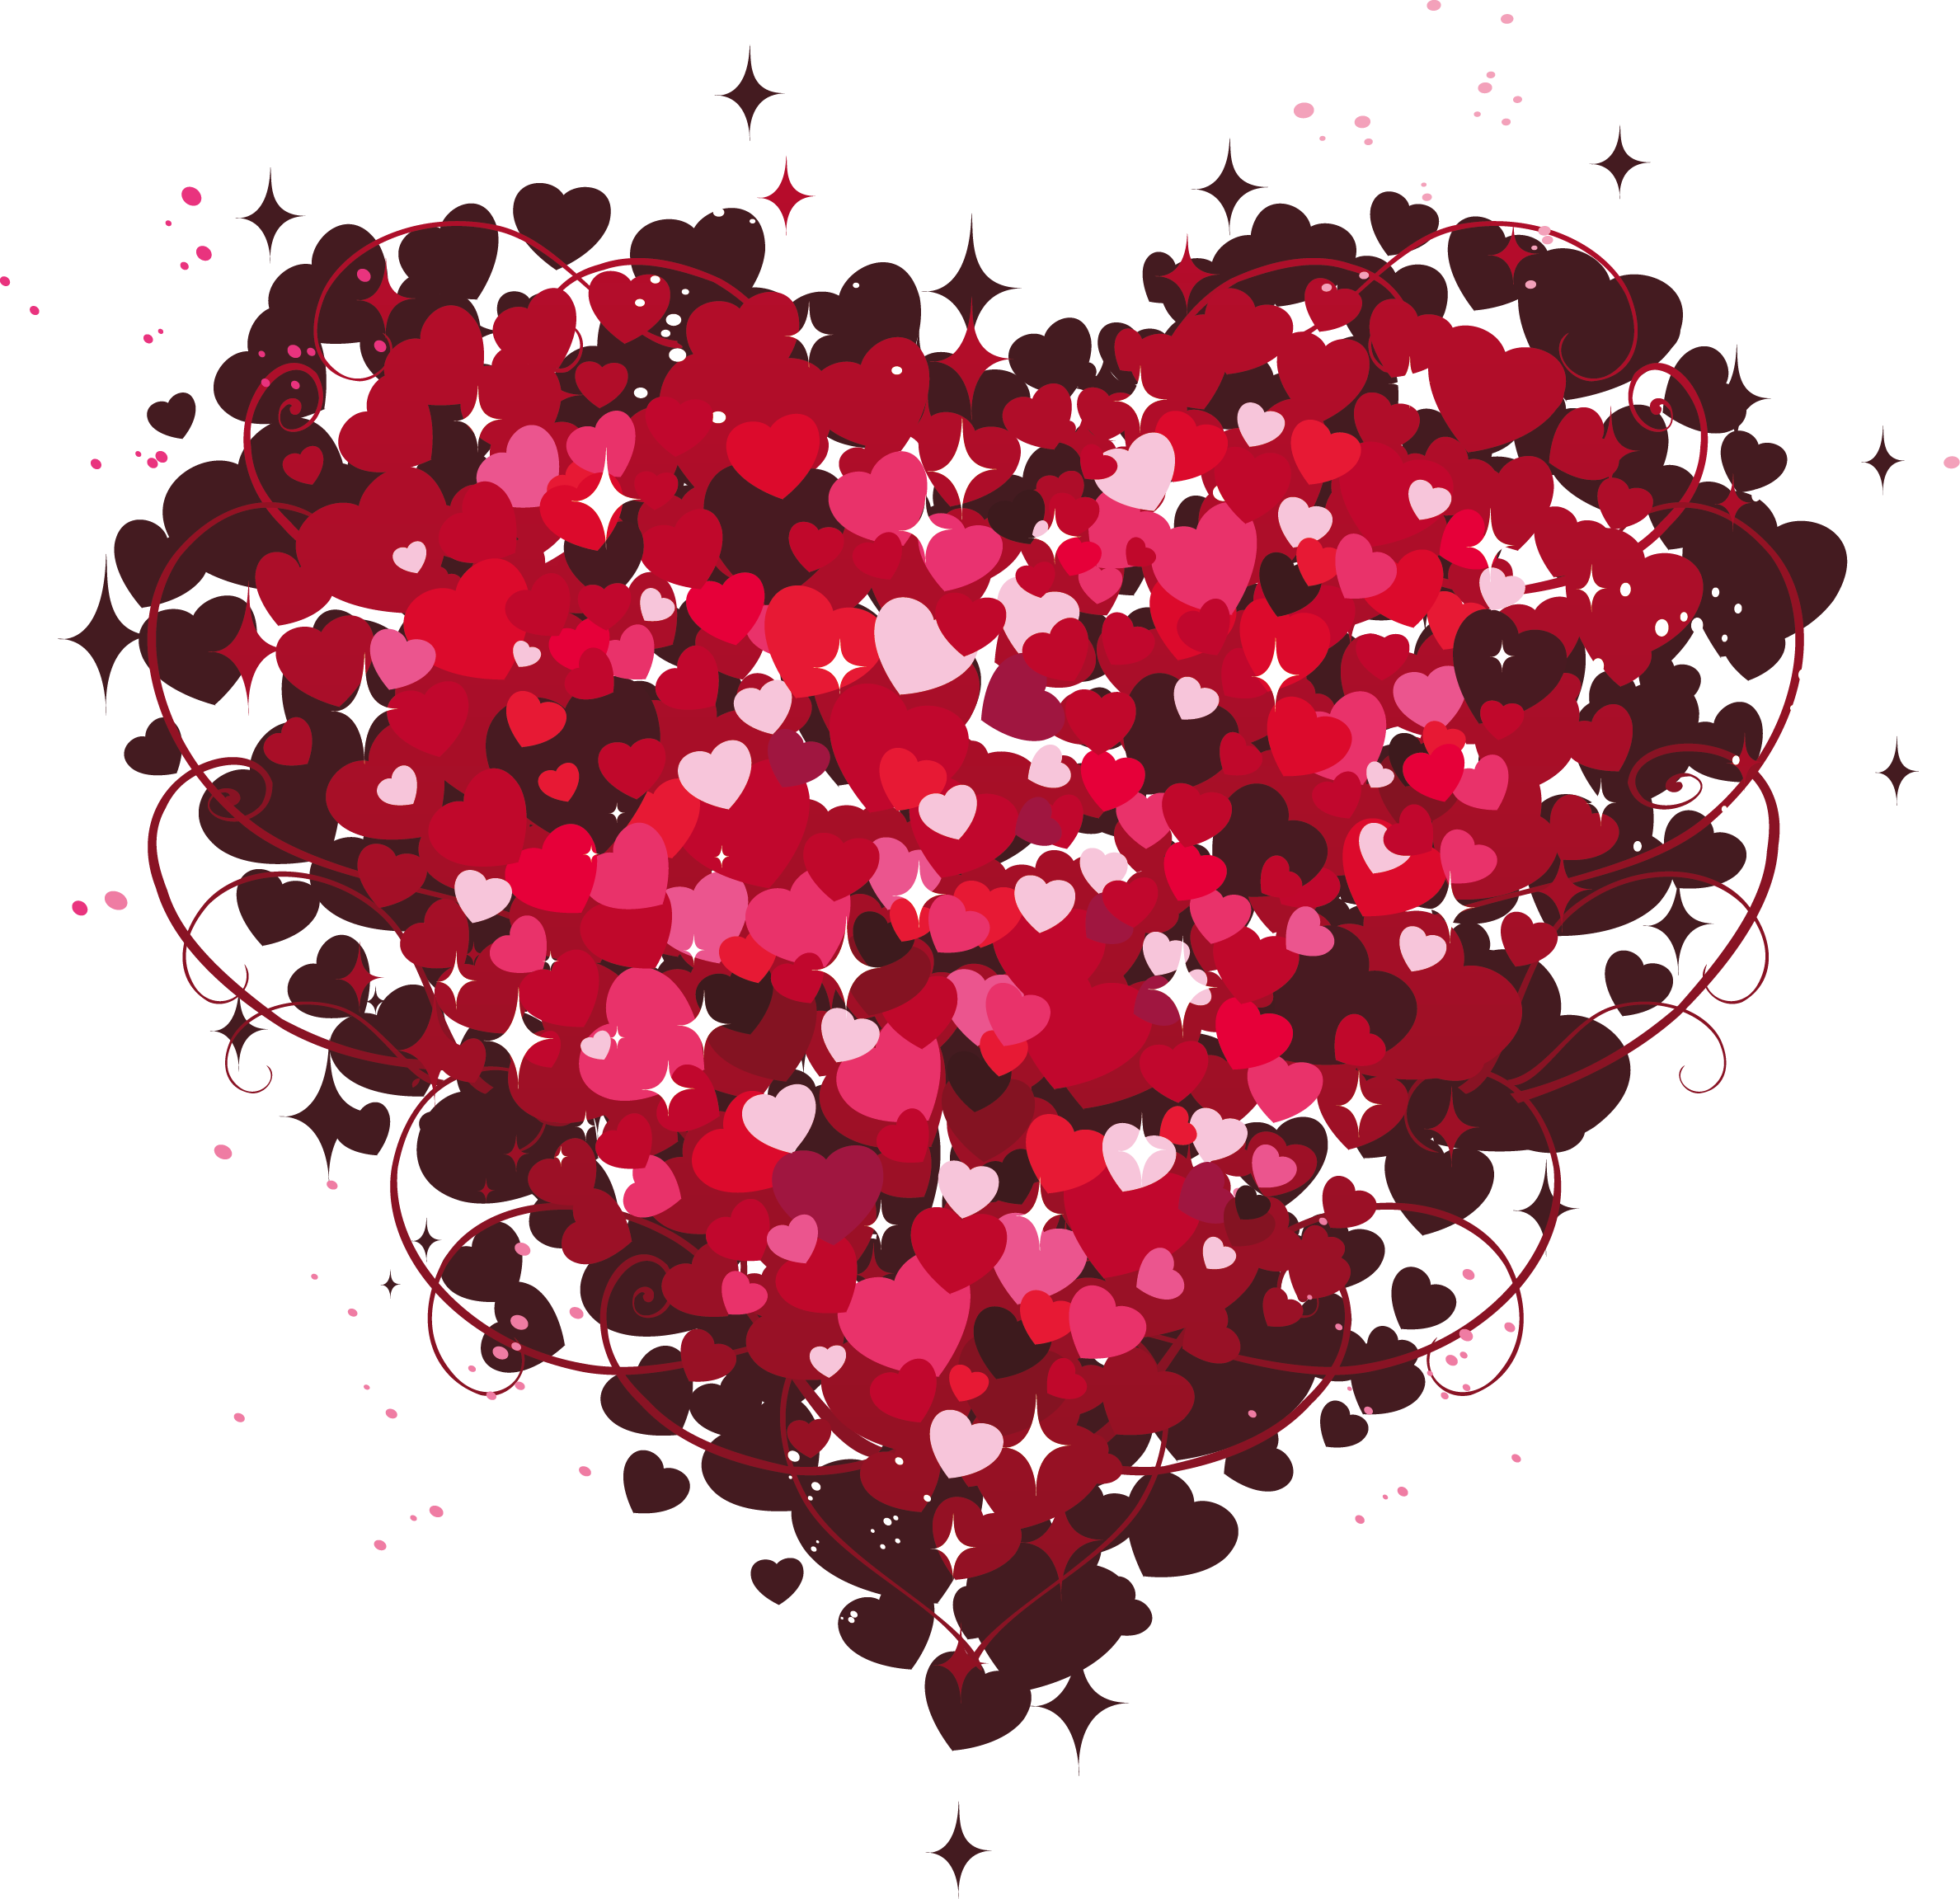 Love hearts png. Heart of clipart pinterest